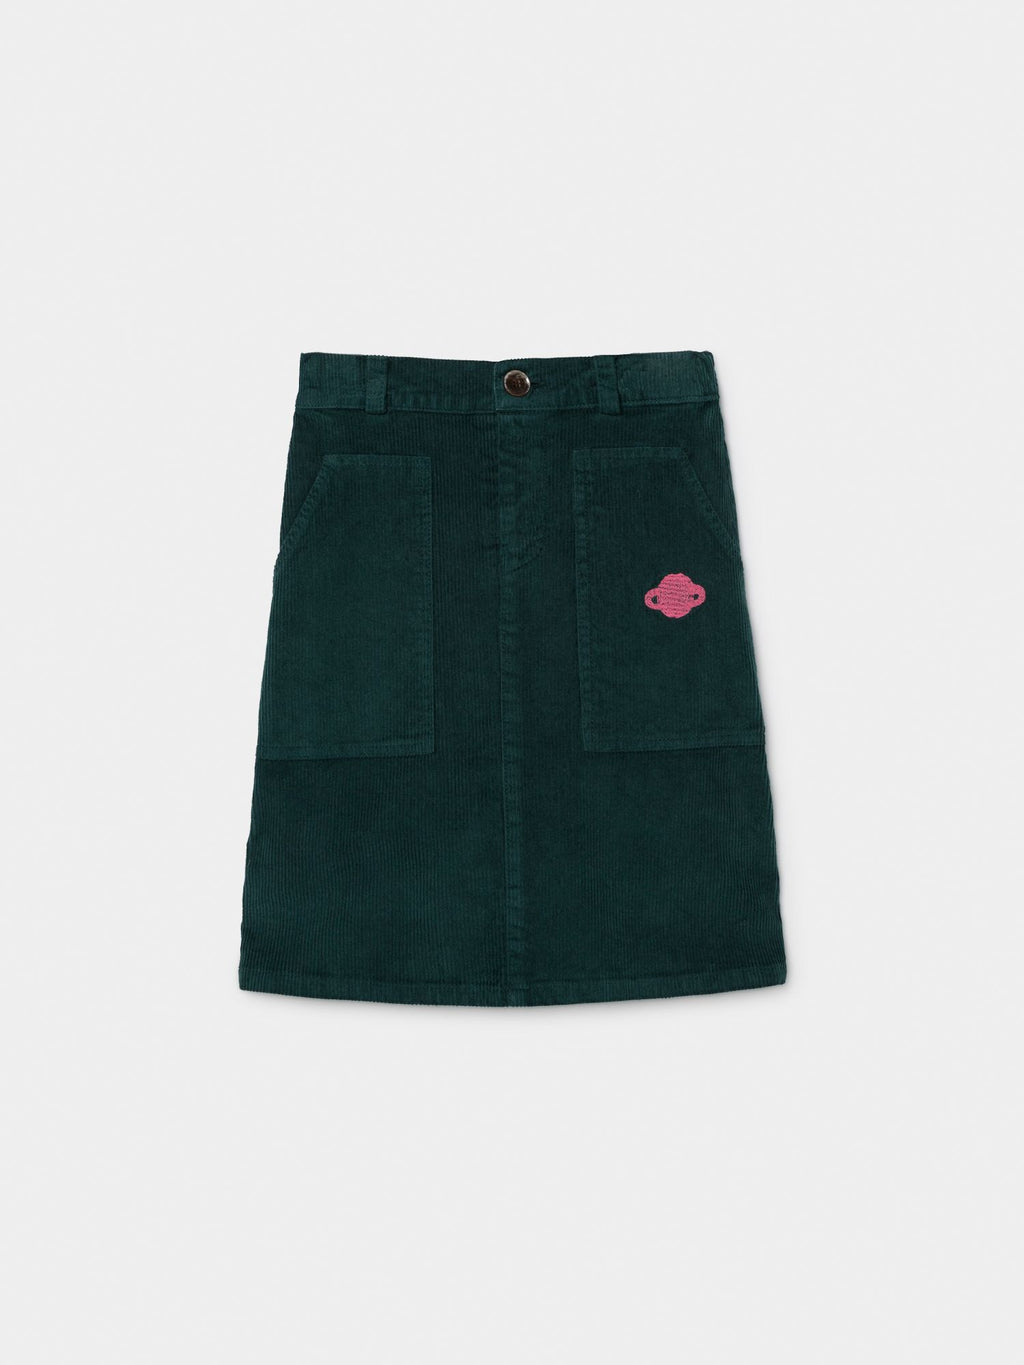 Saturn Corduroy Skirt